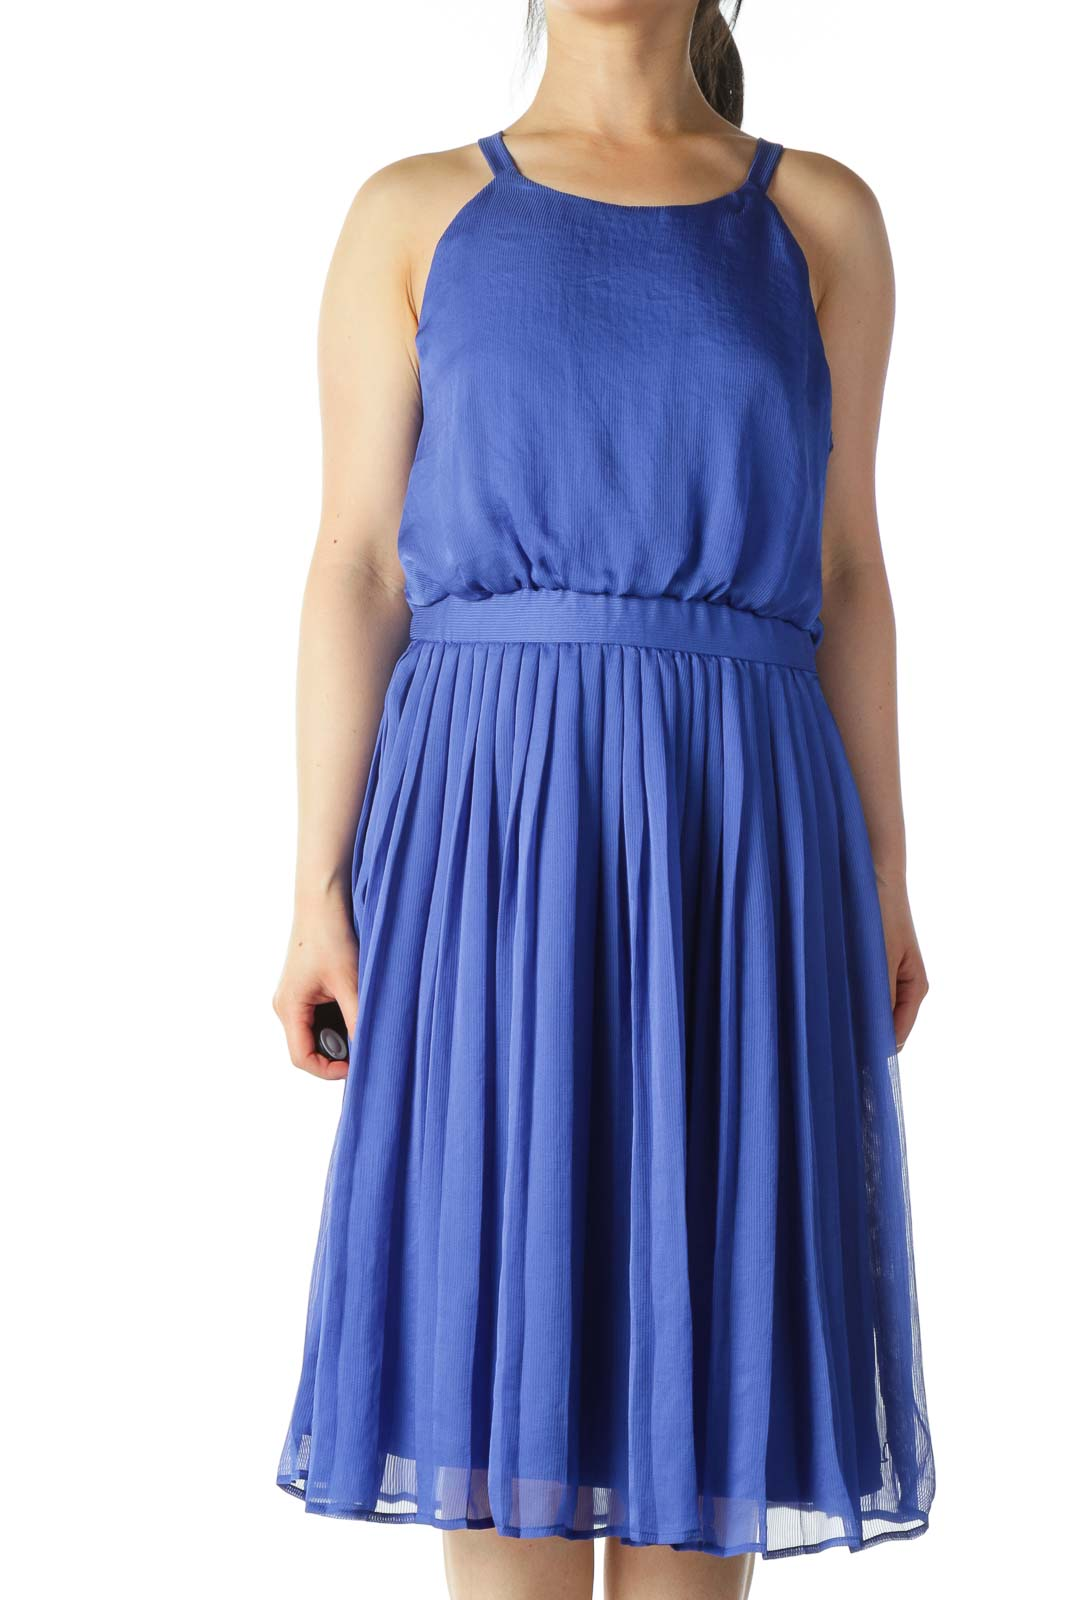 Electric Blue Pleated Textured A-Line Dress